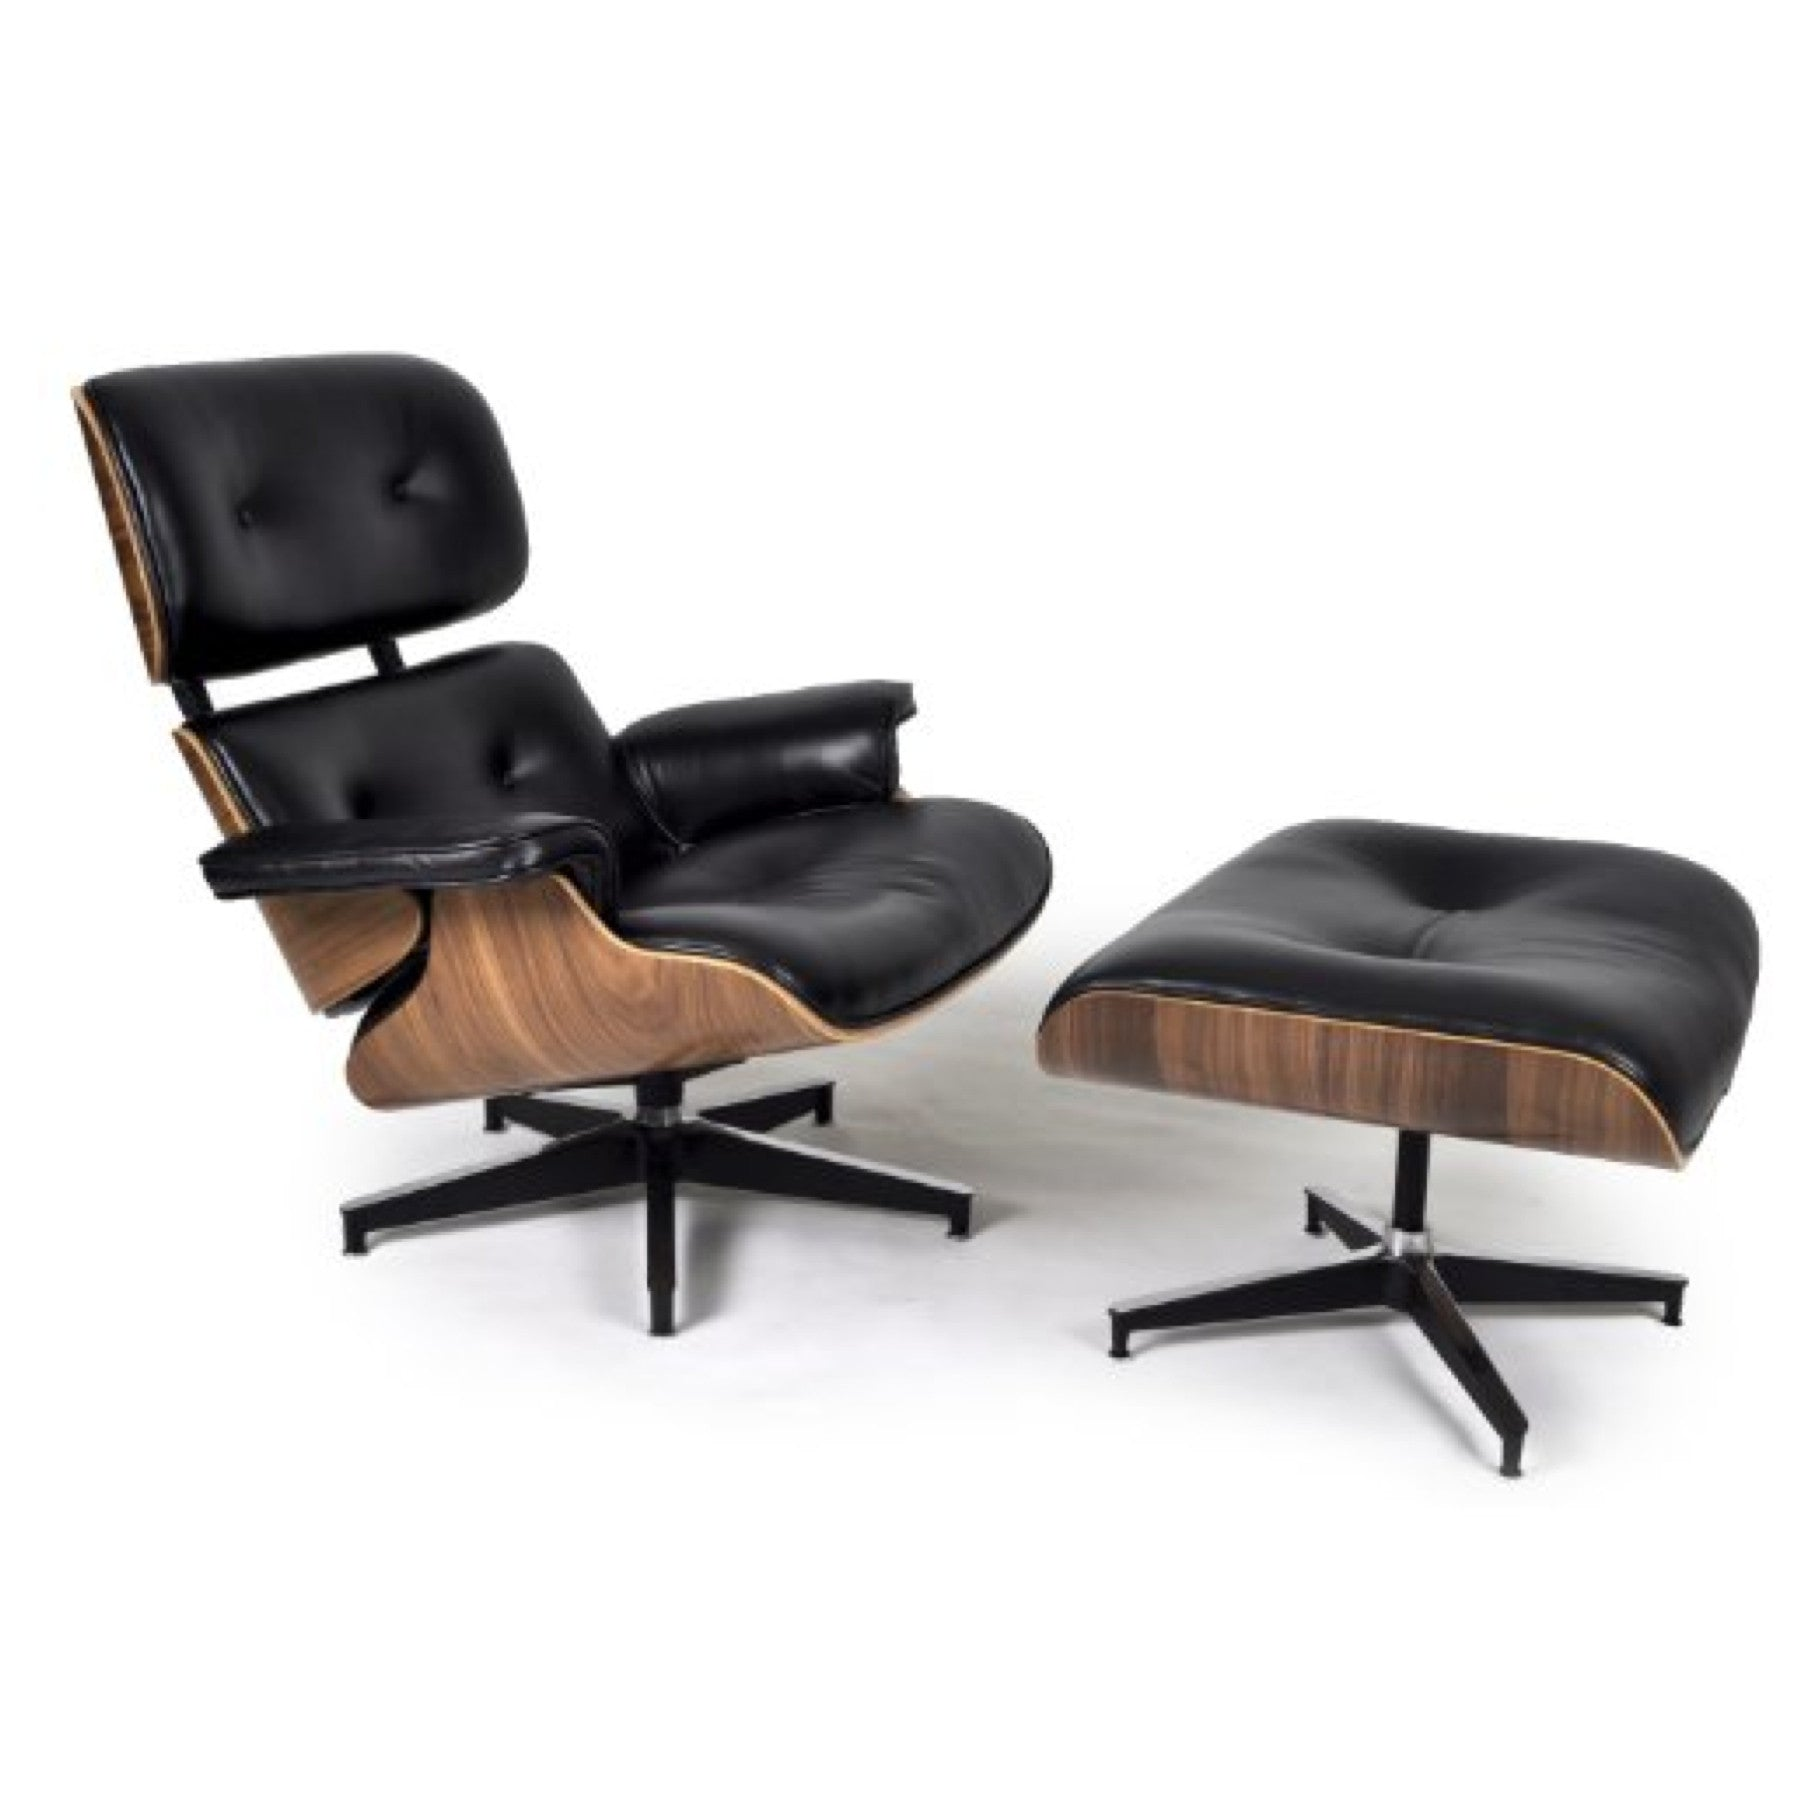 tr40006 ray charles eames style classic lounge chair ottoman